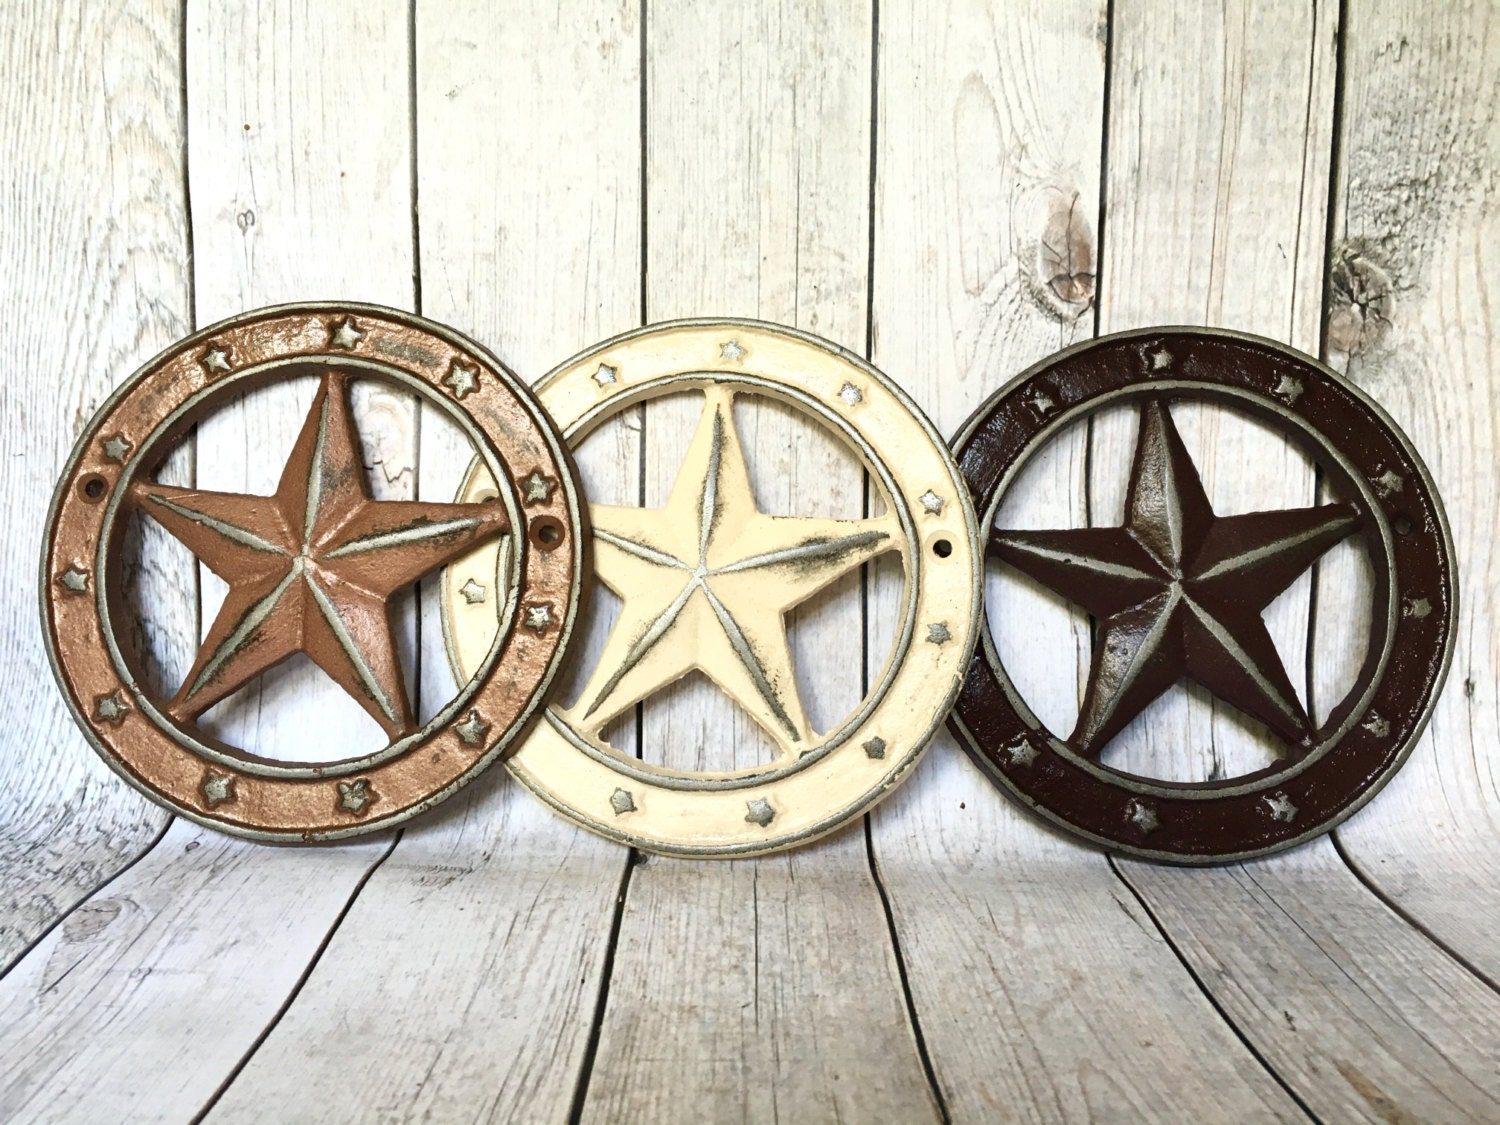 Rustic Star Decor Gallery Wall Decor Western Star Rustic